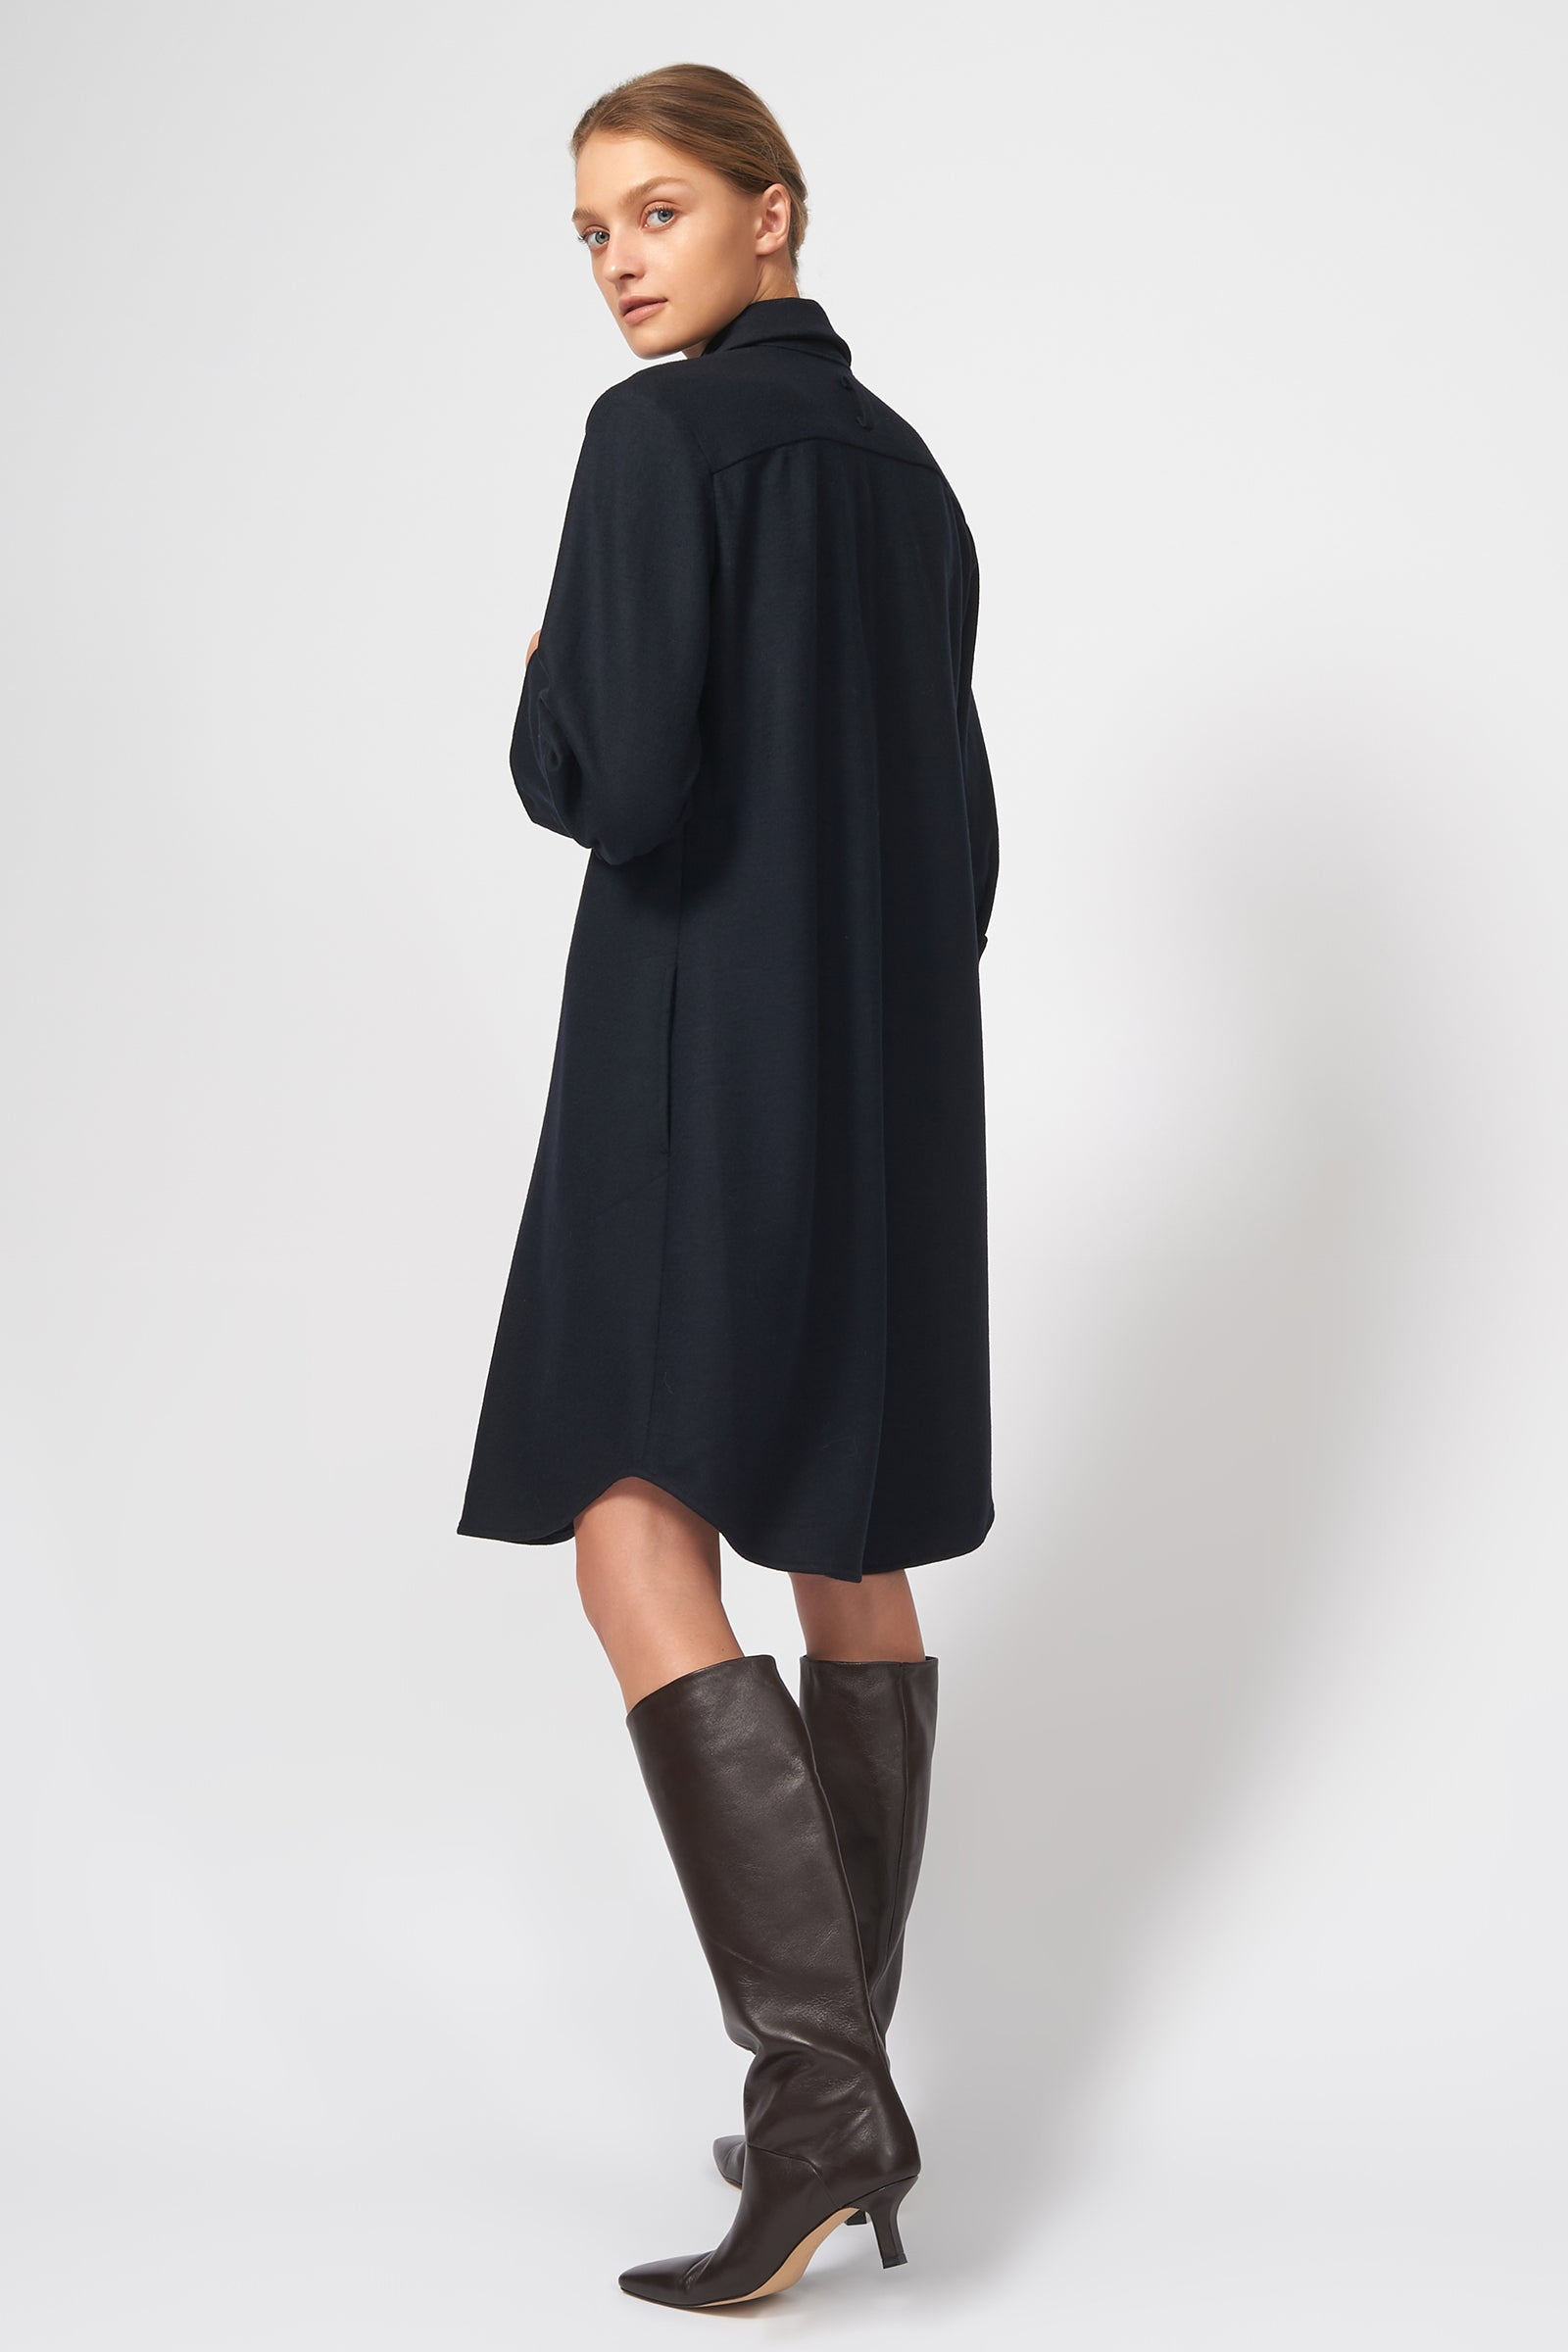 Kal Rieman Wide Cuff Shirt Dress in Midnight on Model Full Front View